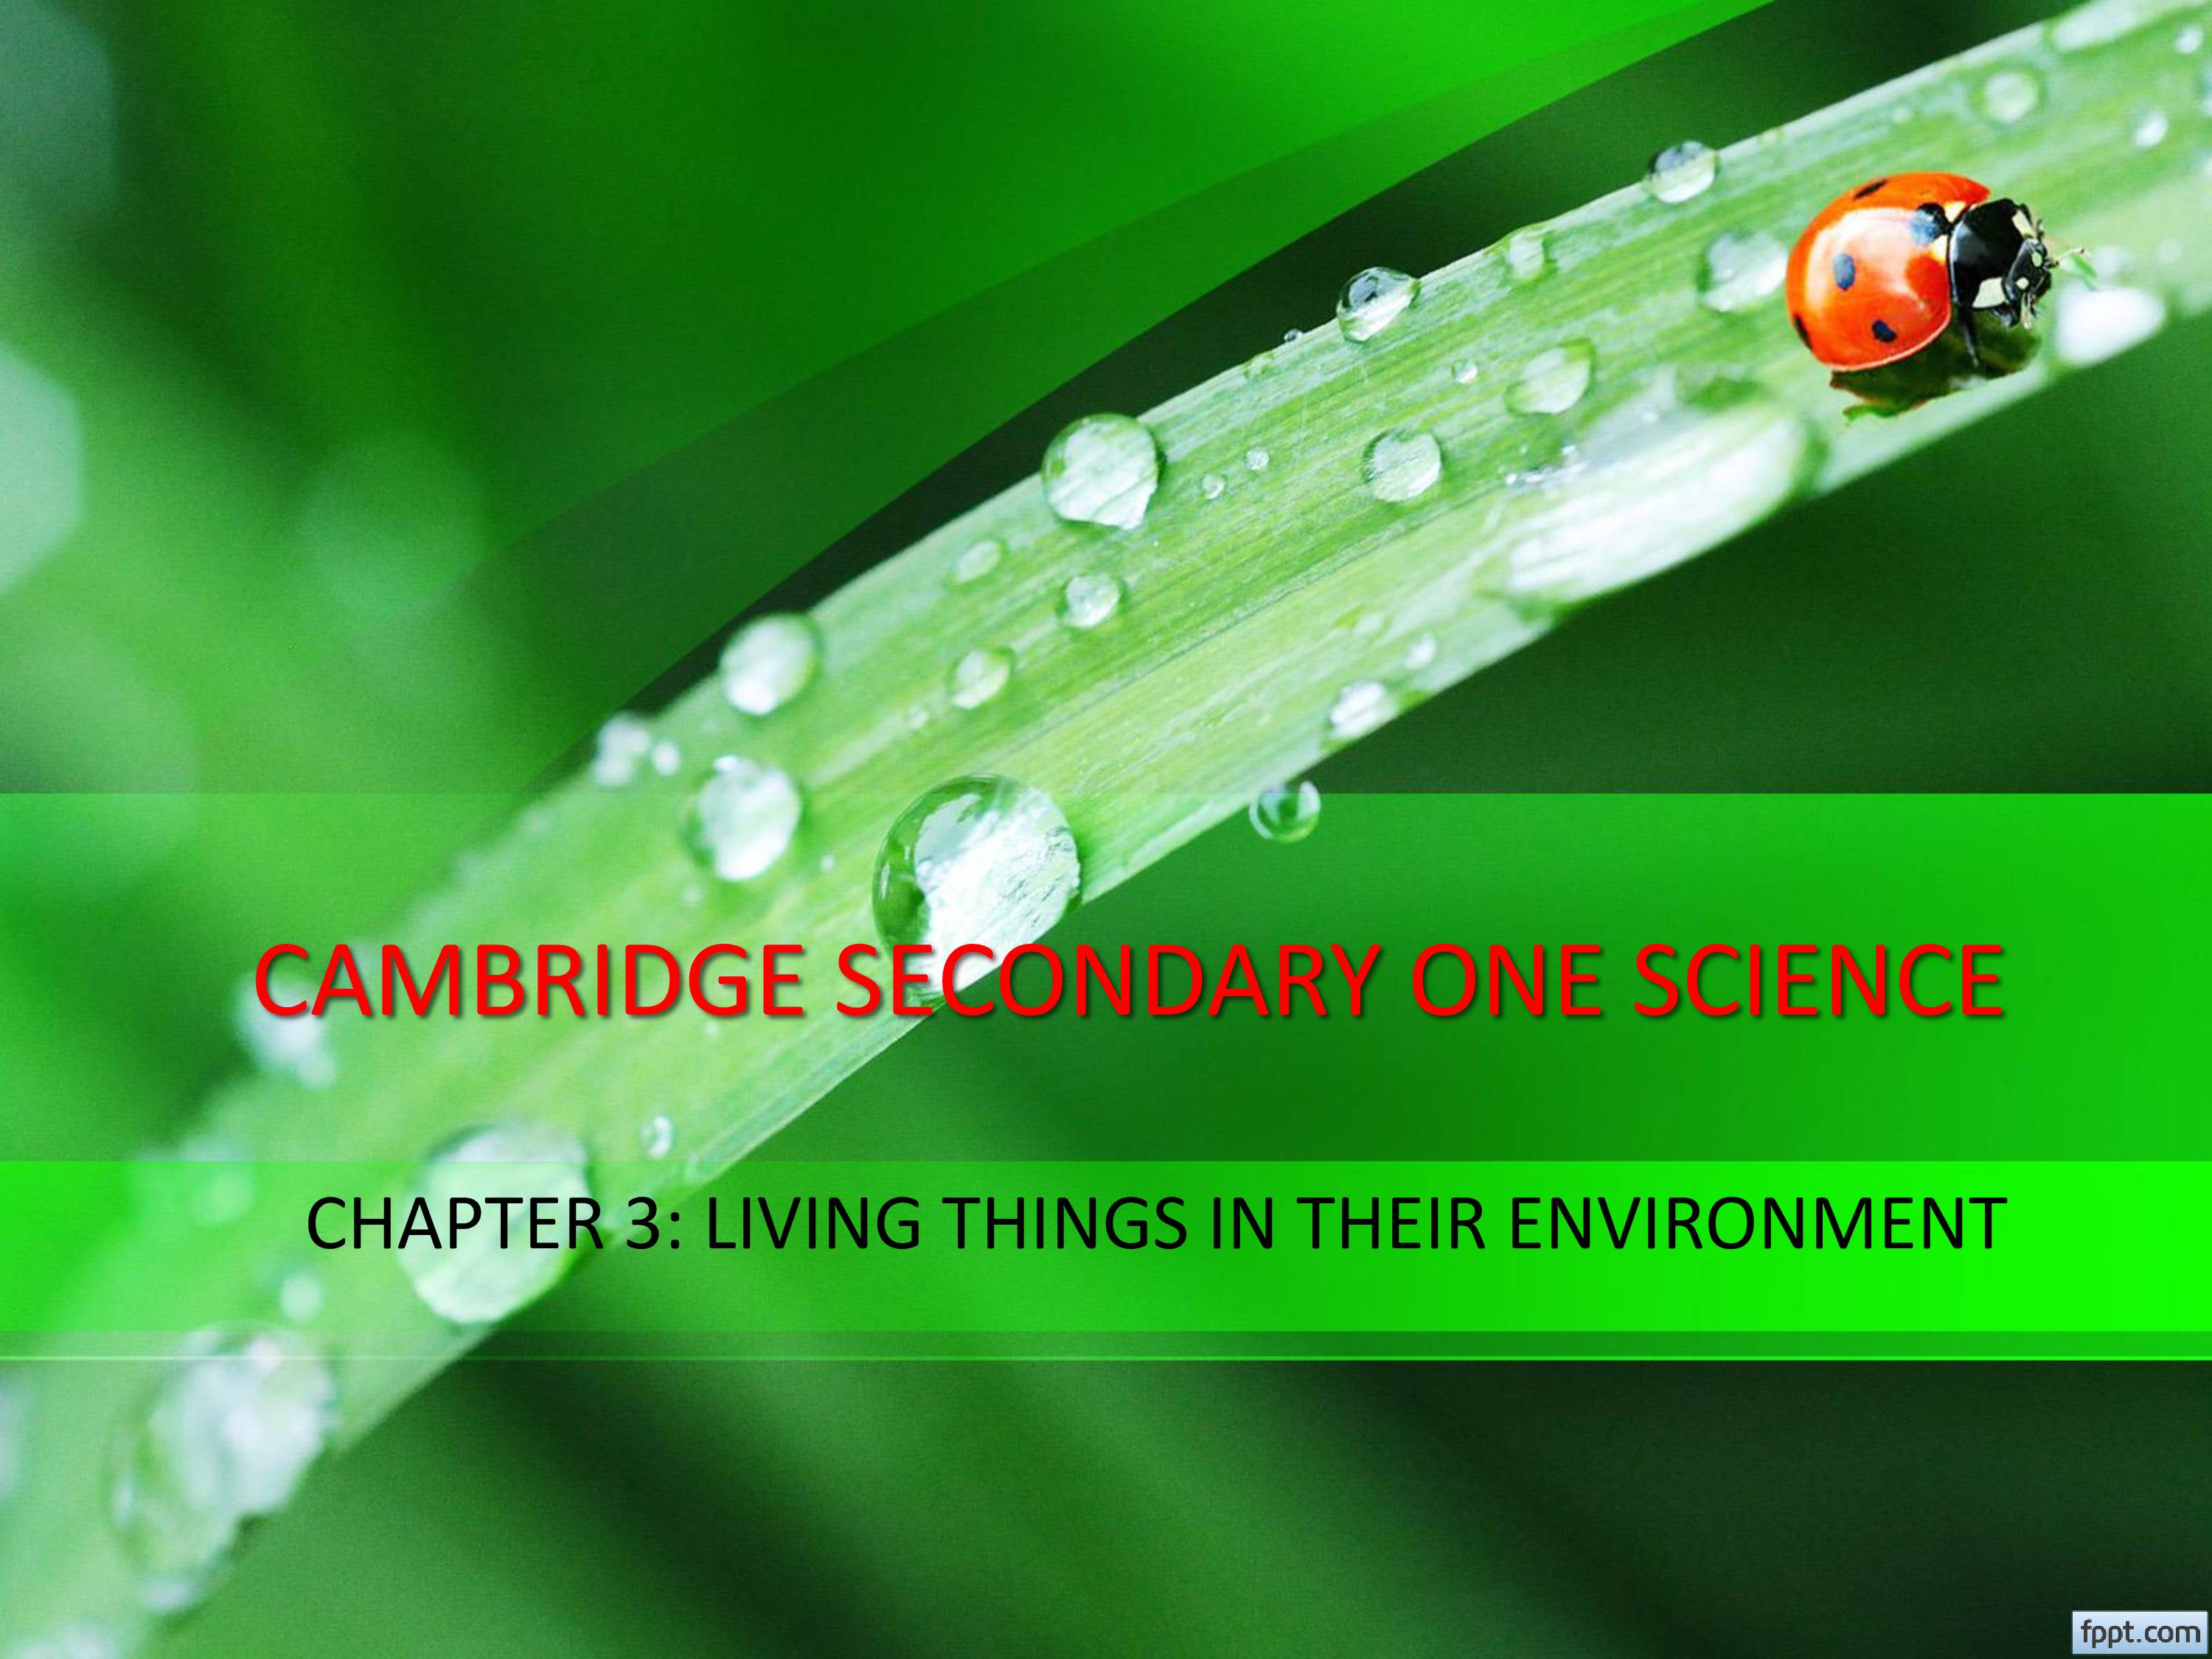 PPT on Cambridge Science of Year 7